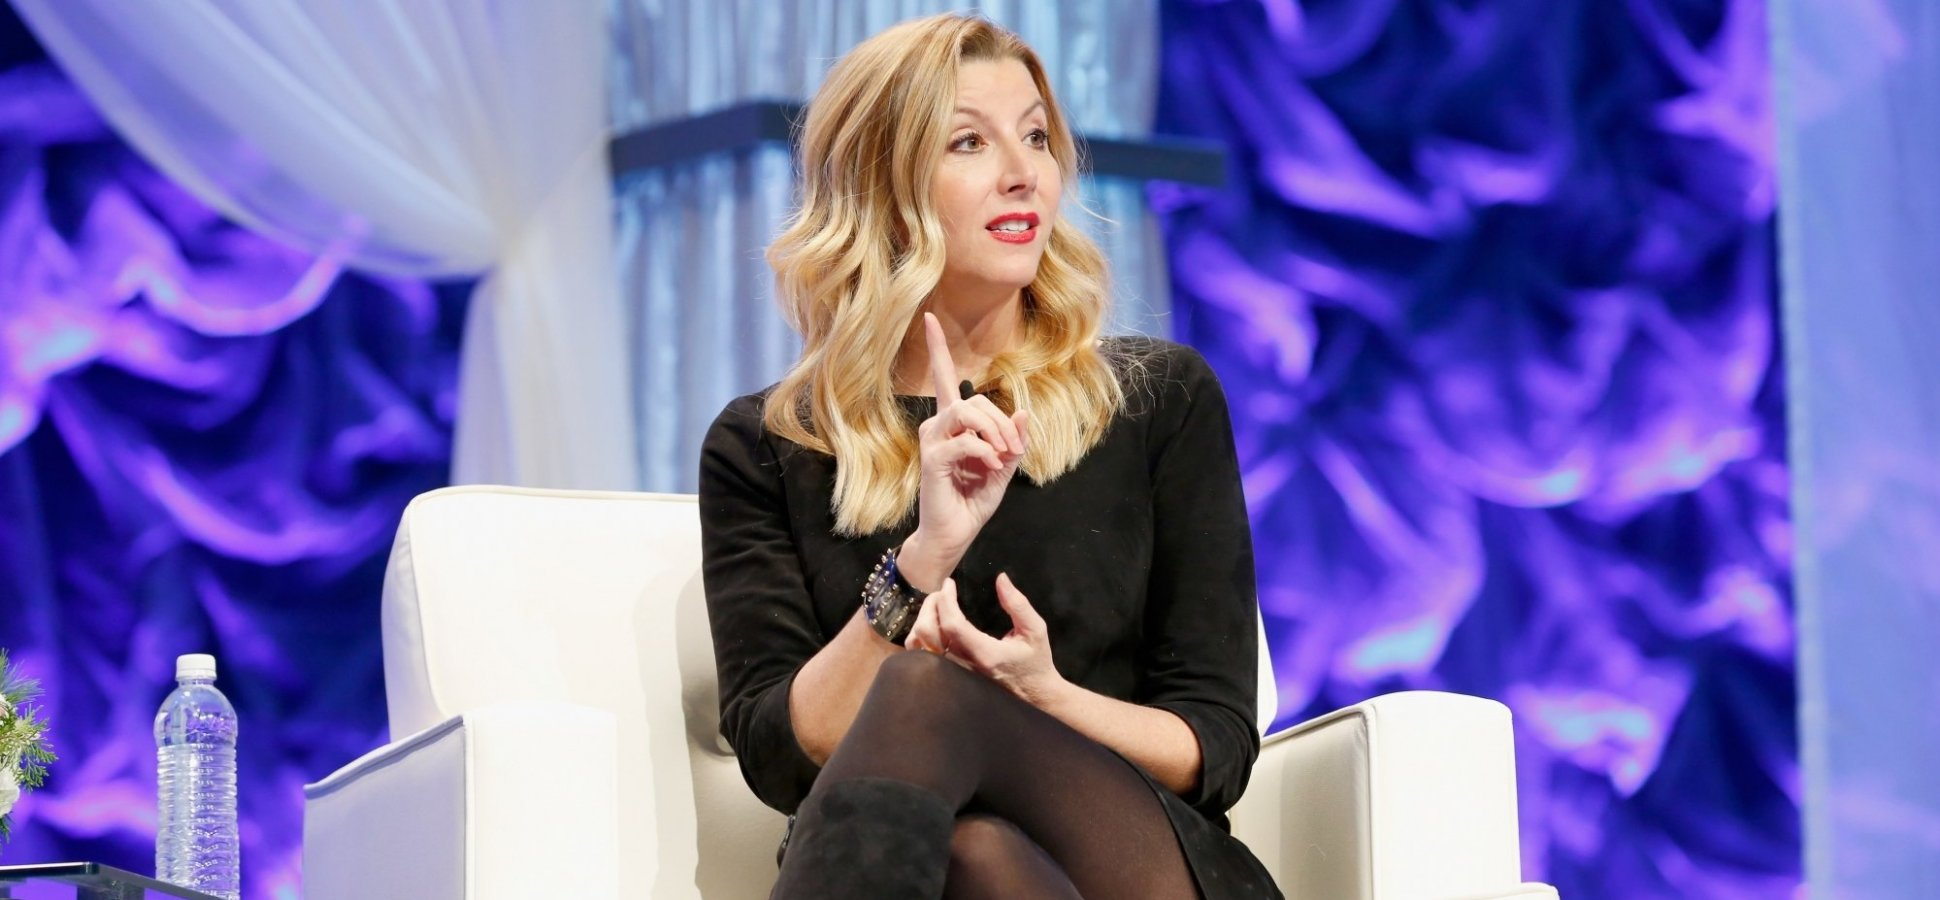 Spanx Founder Sara Blakely Just Identified the No. 1 Reason Why People Don't Succeed (and It's Quite Brilliant)